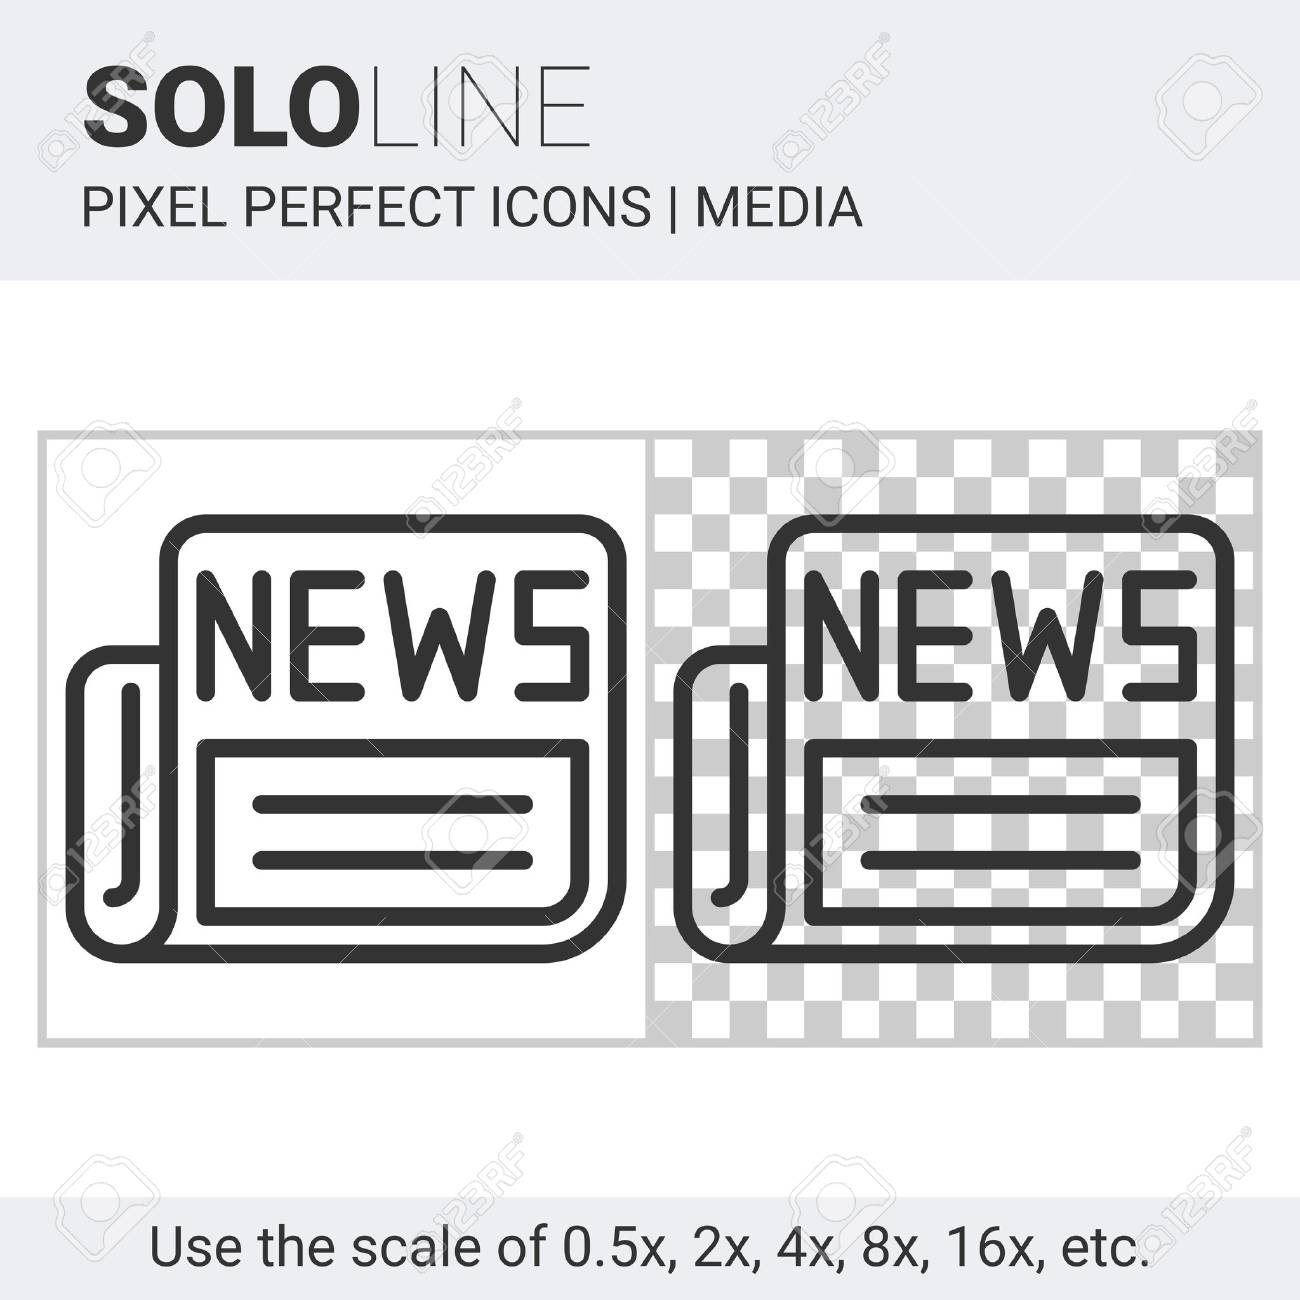 pixel perfect solo line newspaper icon on white and transparent